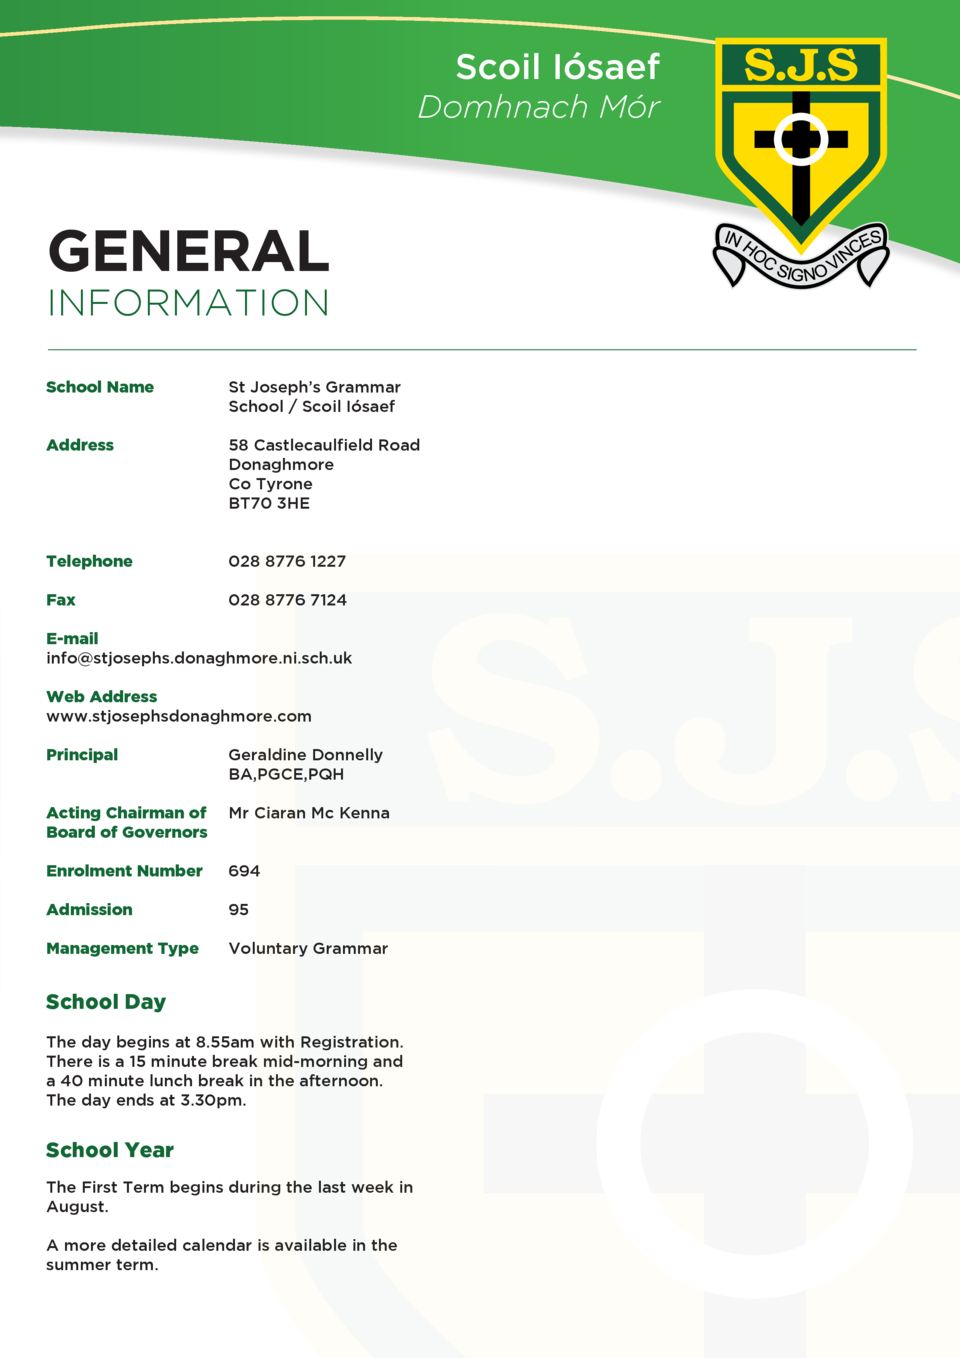 Scoil I  saef Domhnach M  r  GENERAL INFORMATION School Name     St Joseph   s Grammar School   Scoil I  saef  Address  58...